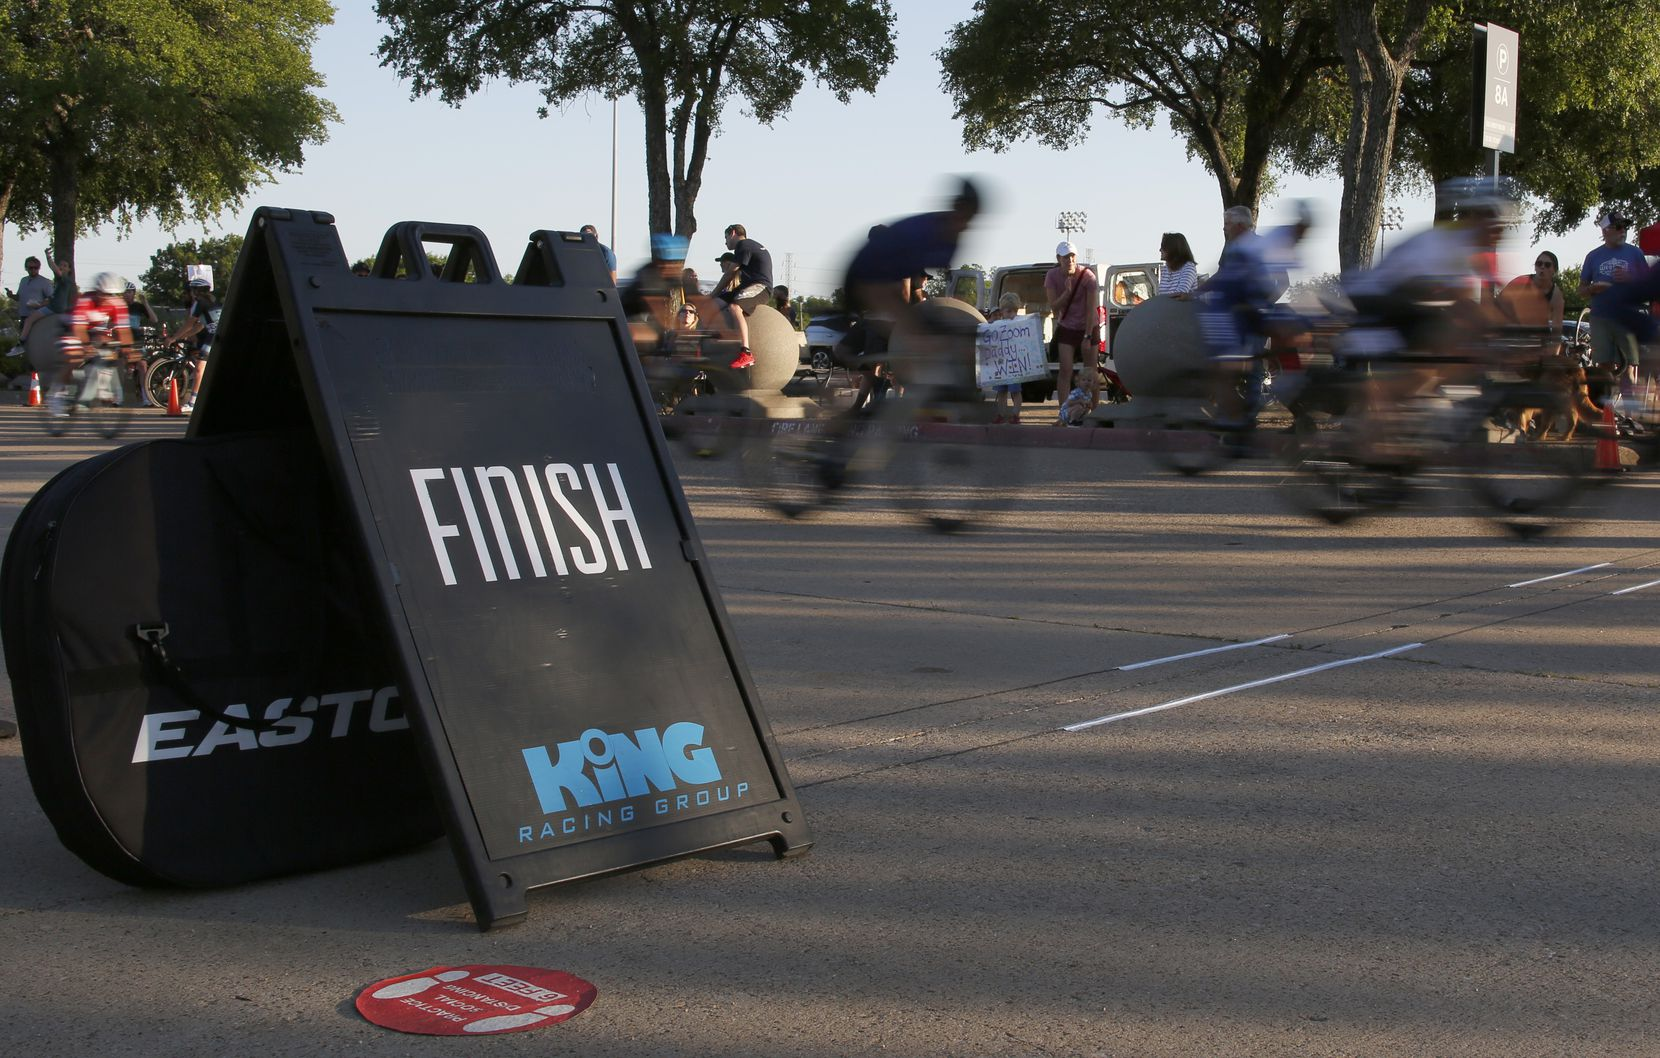 Cyclists race past the finish line during opening night for King Racing Group's season at Fair Park in Dallas on May 6, 2021.